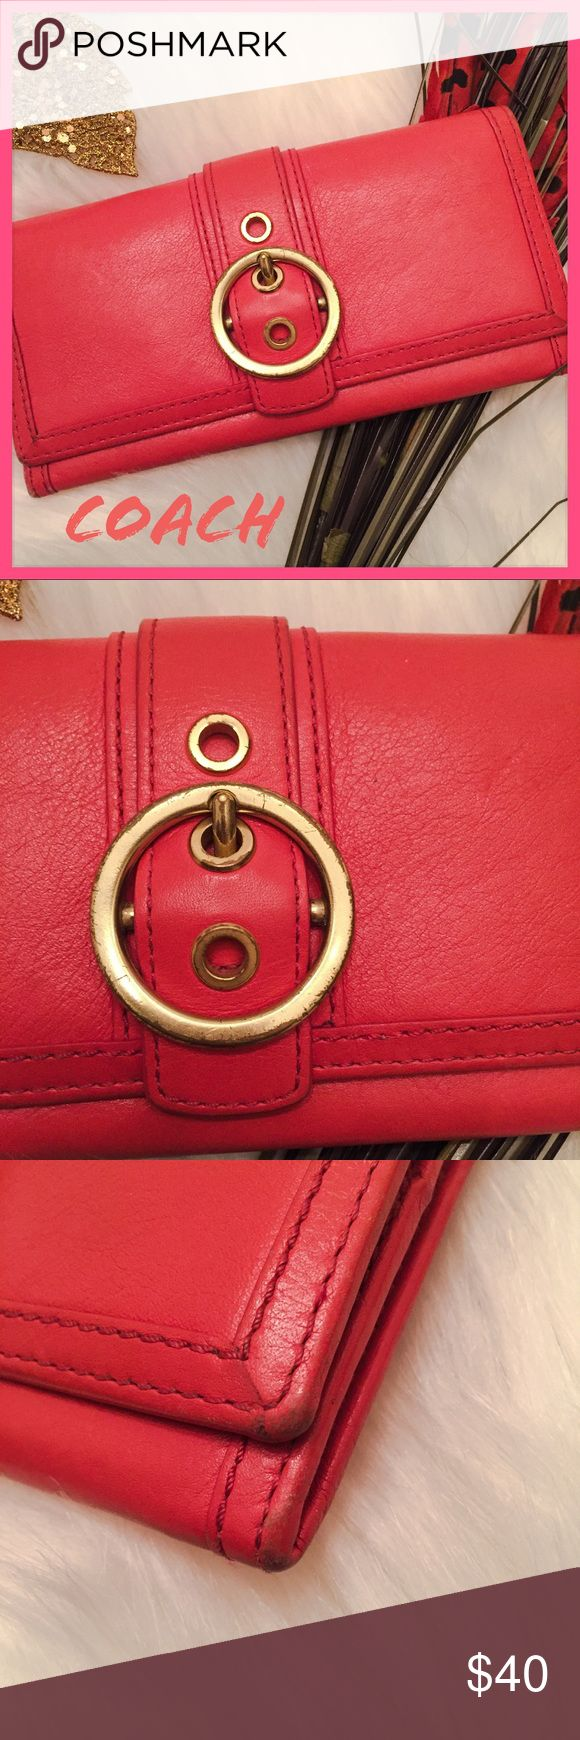 EUC POPPY RED COACH TWO FOLD WALLET Gorgeous authentic leather coach wallet. Rare design from older collections. All edges have signs of wear, pen mark on top right of inside when open. Sincerely apologize for the pen mark as it wasn't put there by myself. In the process of trying to get ink remover for leather to clean it. Ask any questions before purchasing. ❌trades ❌ PayPal ❌ holds 👗Measurements upon request  👍 offers*** Please use the offer button ☝🏼 PM Takes 20% commission  📦 fast…